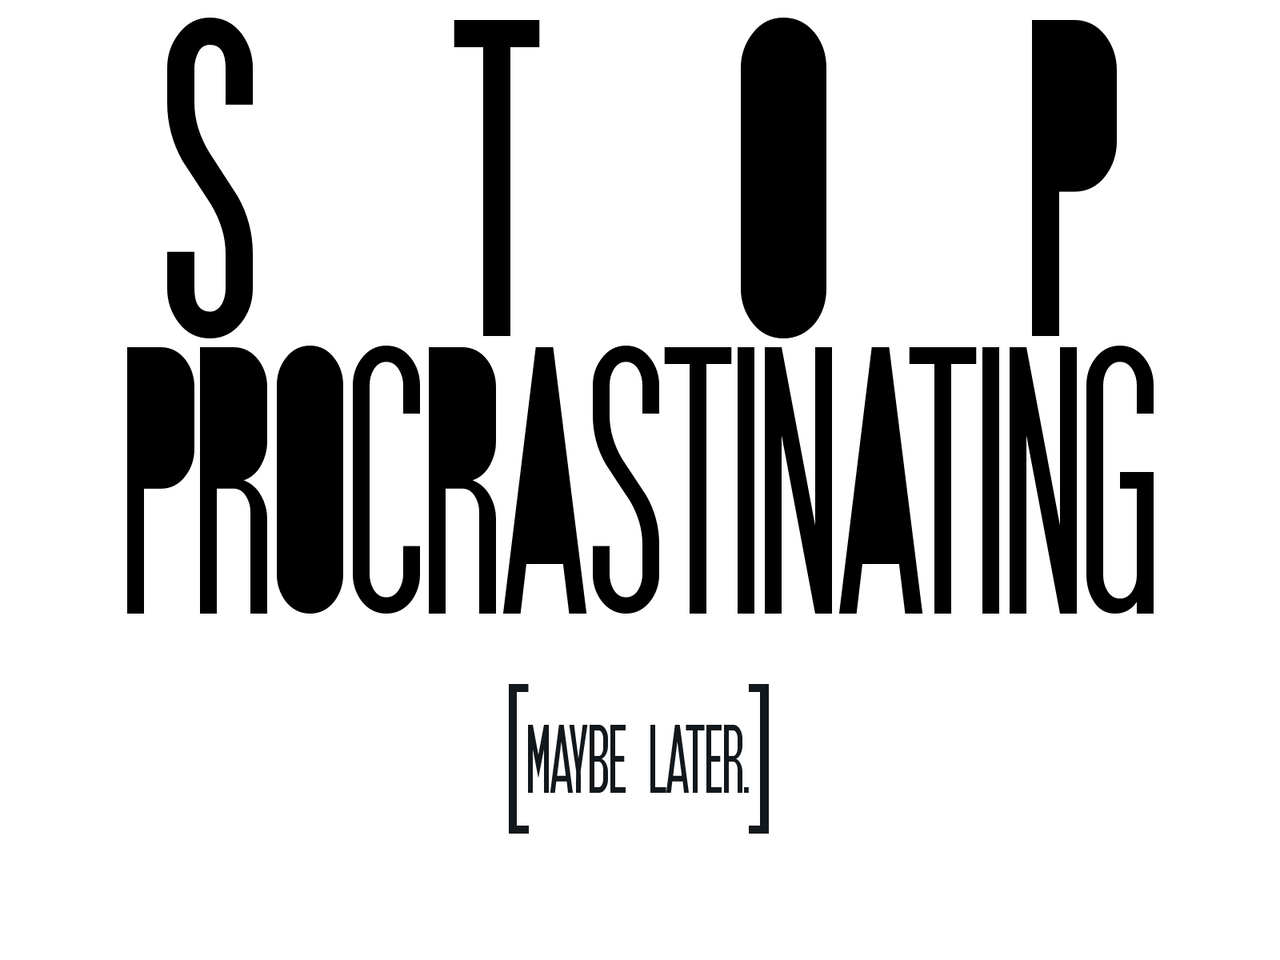 procrastination homework help custom writing services for forget about reading articles about how to avoid procrastination procrastination homework and exams can can help minimize procrastination patterns later